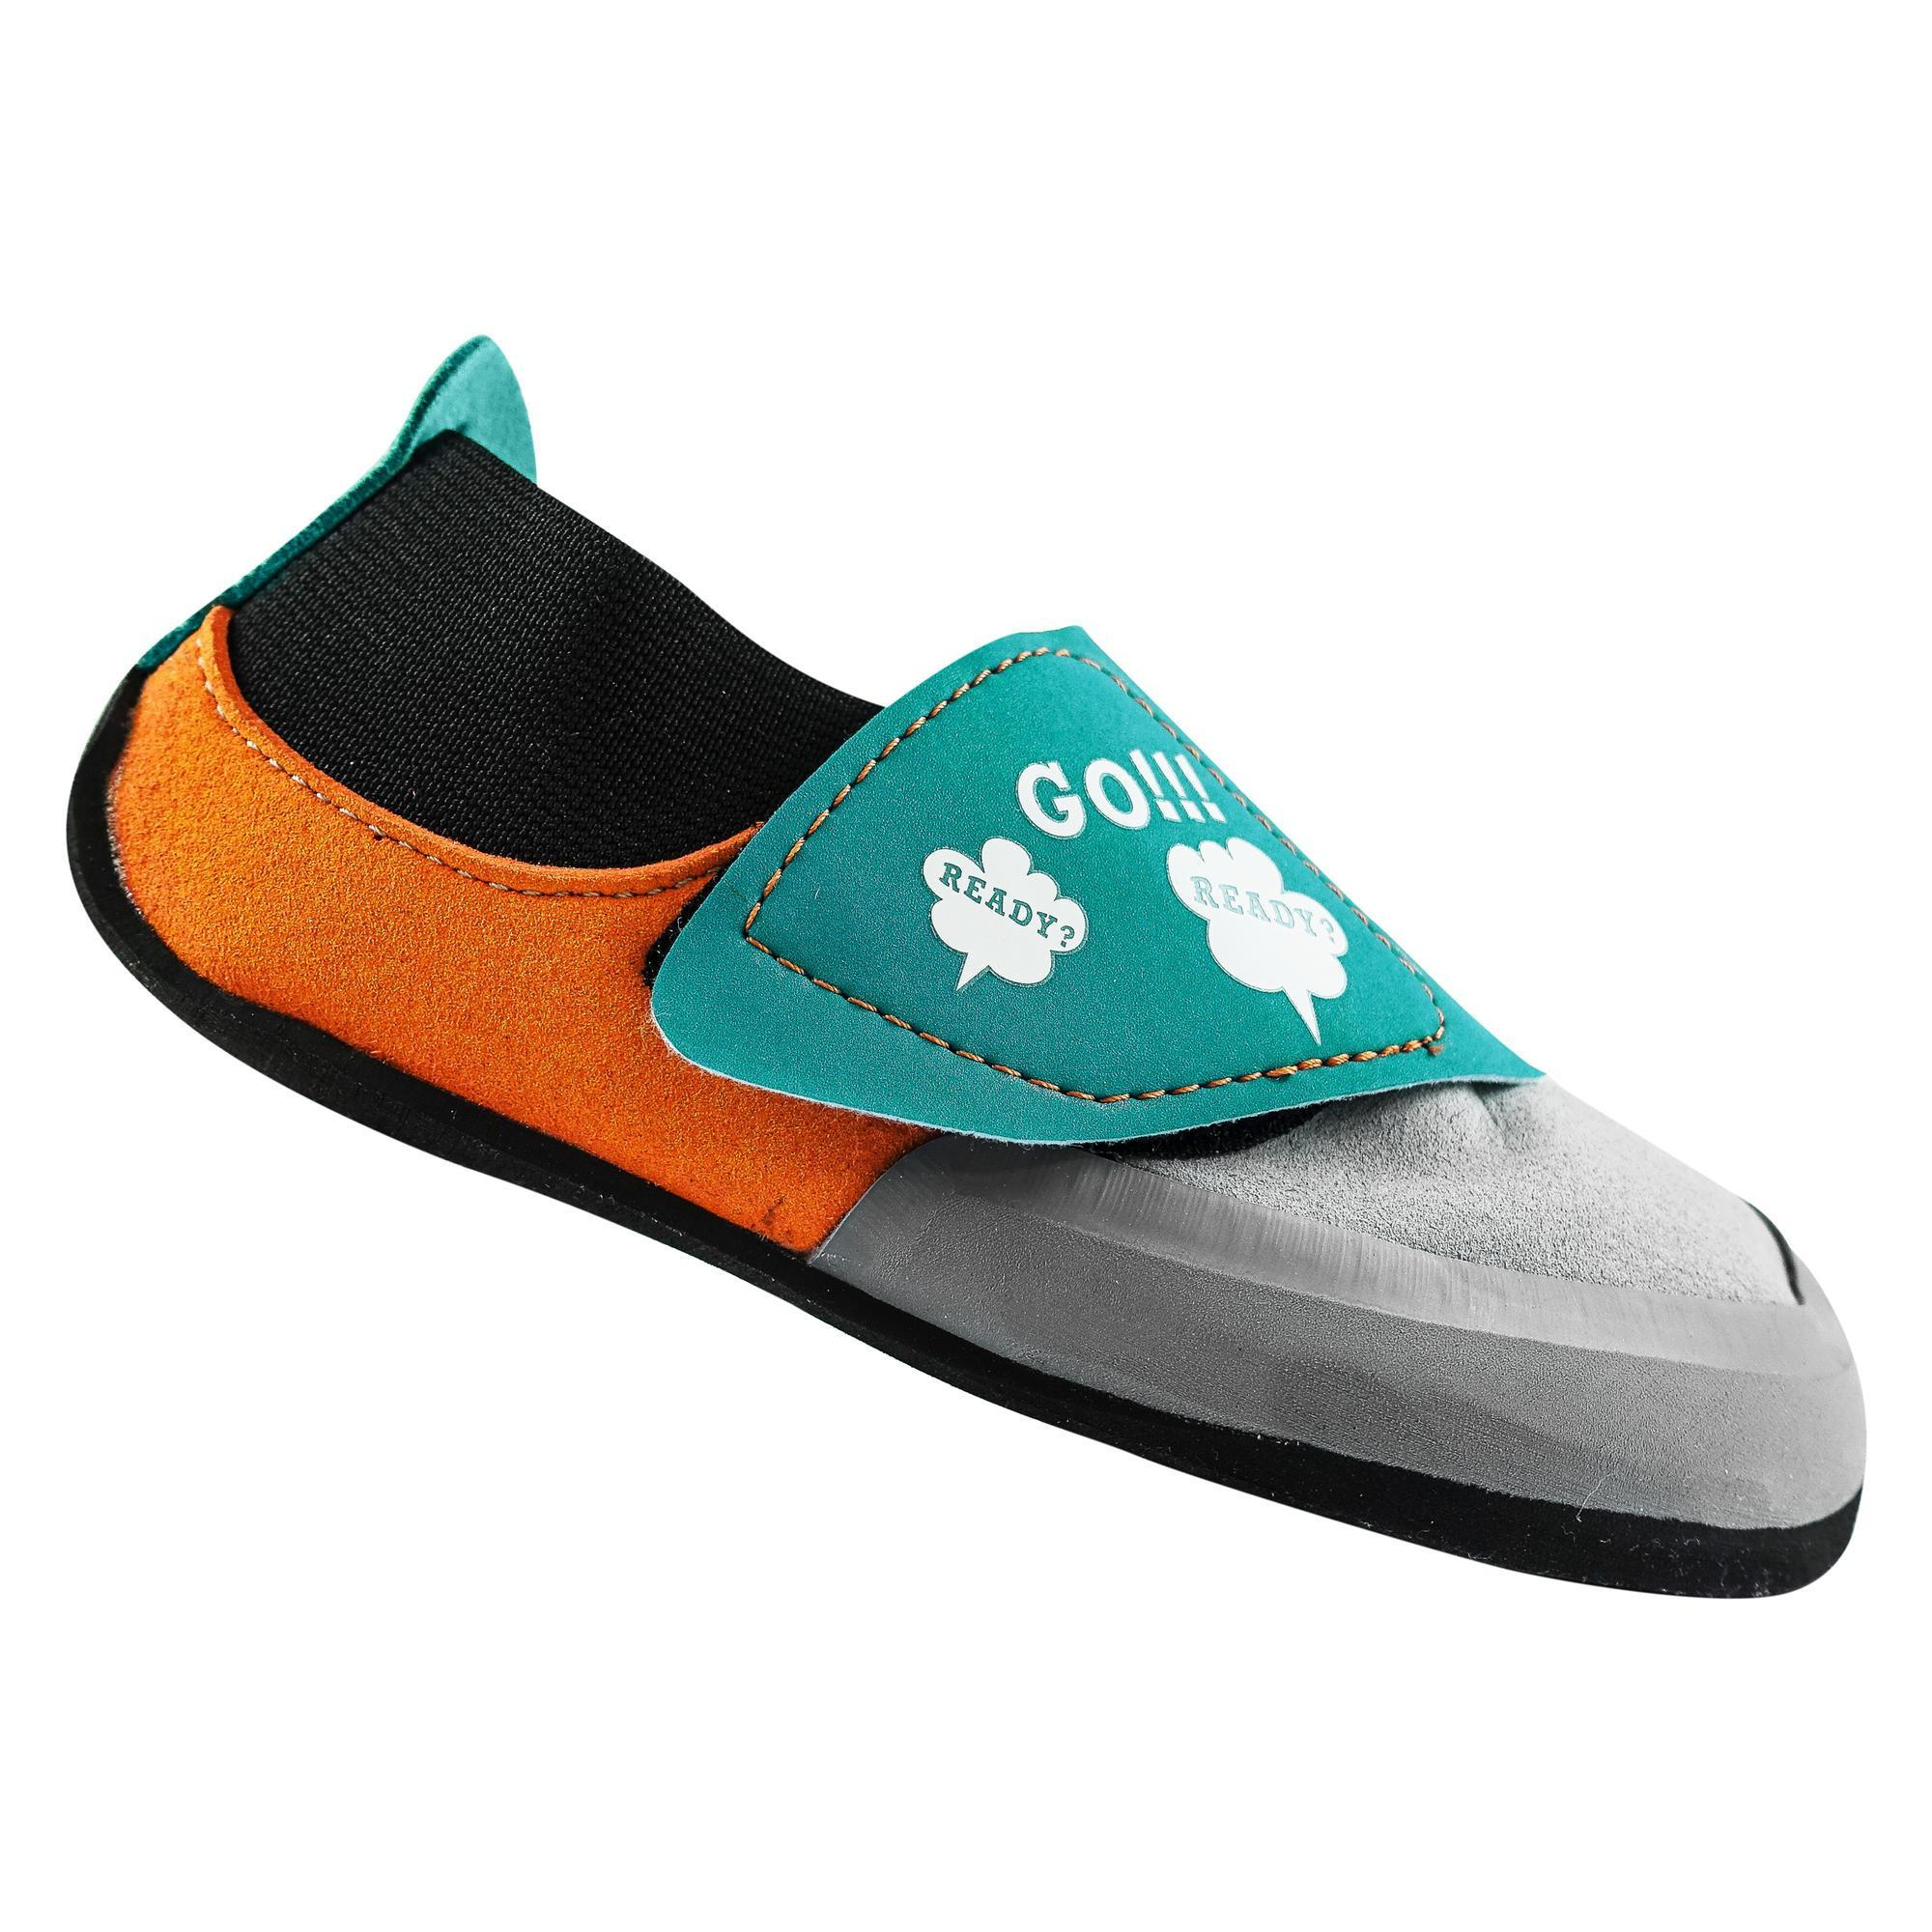 Chausson descalade enfant rock gris orange simond